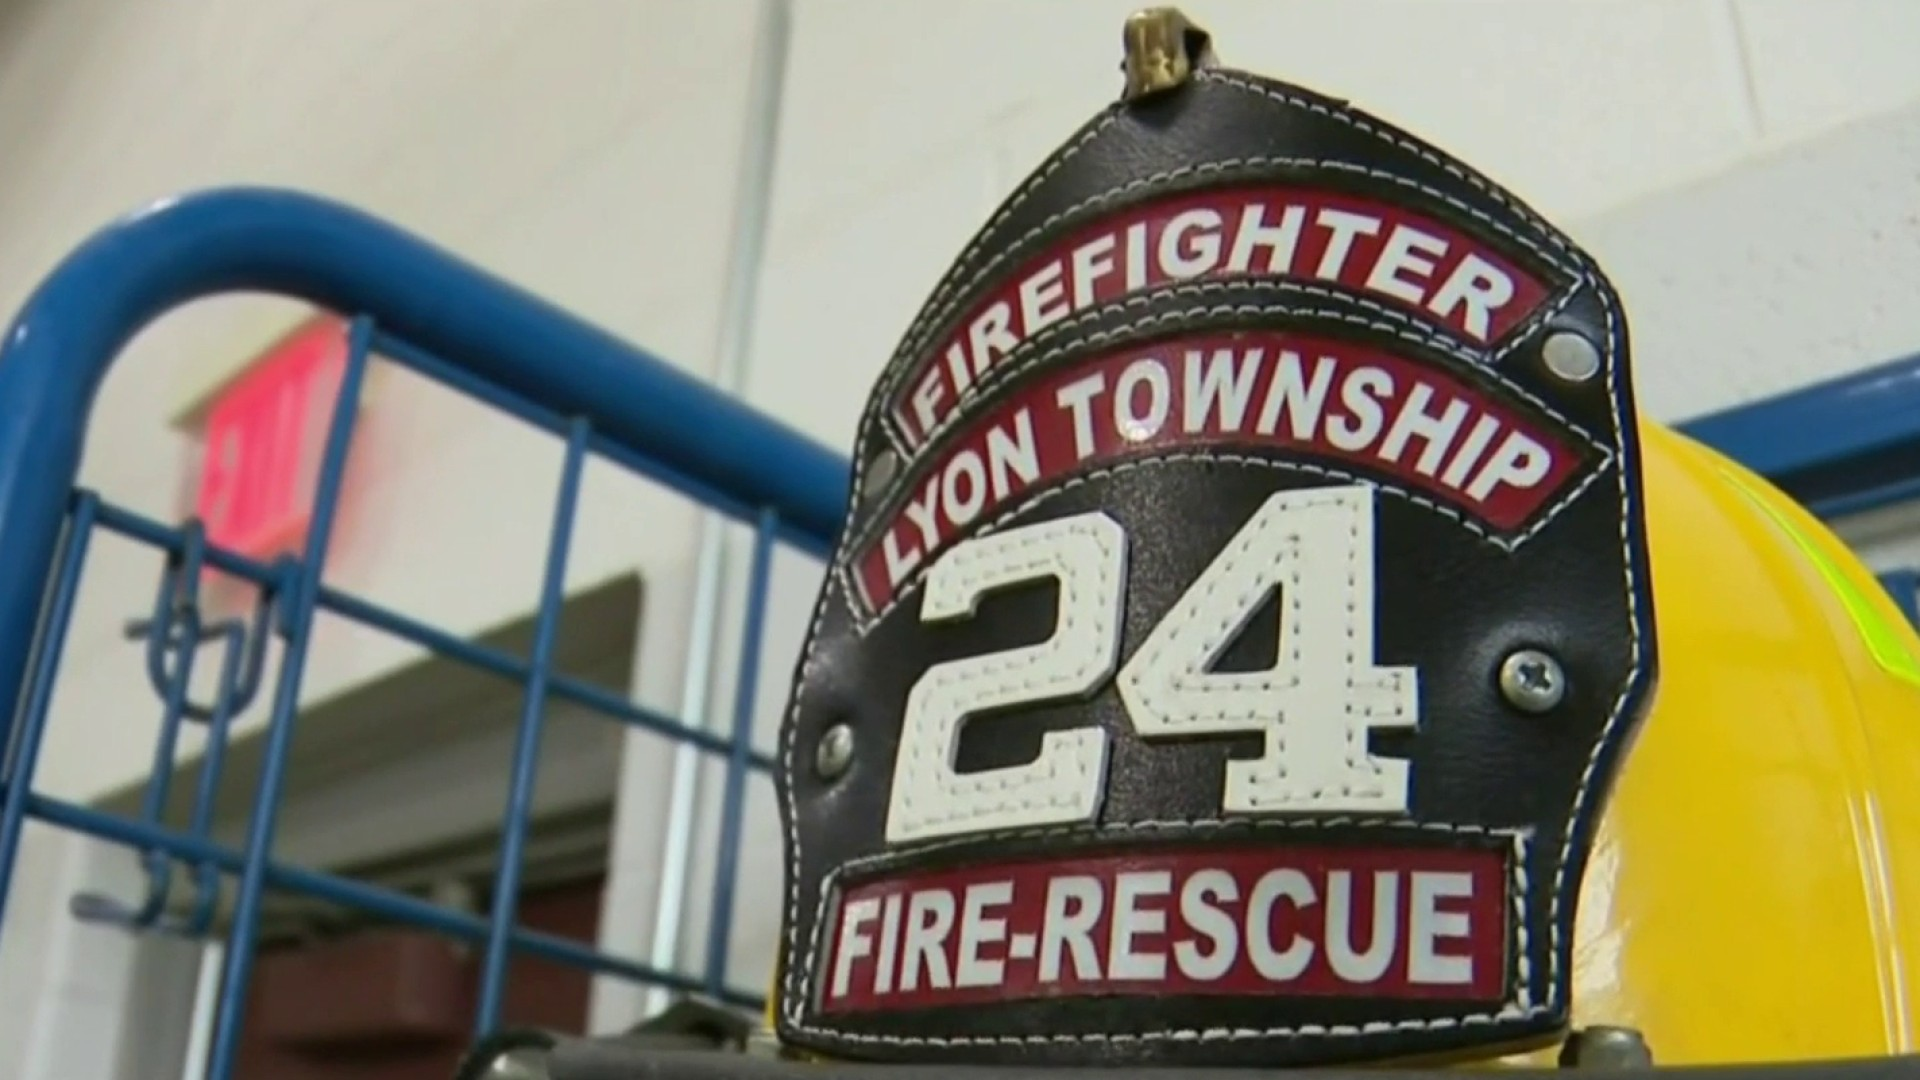 Lyon Township hires first four full-time firefighters, two full-time captains